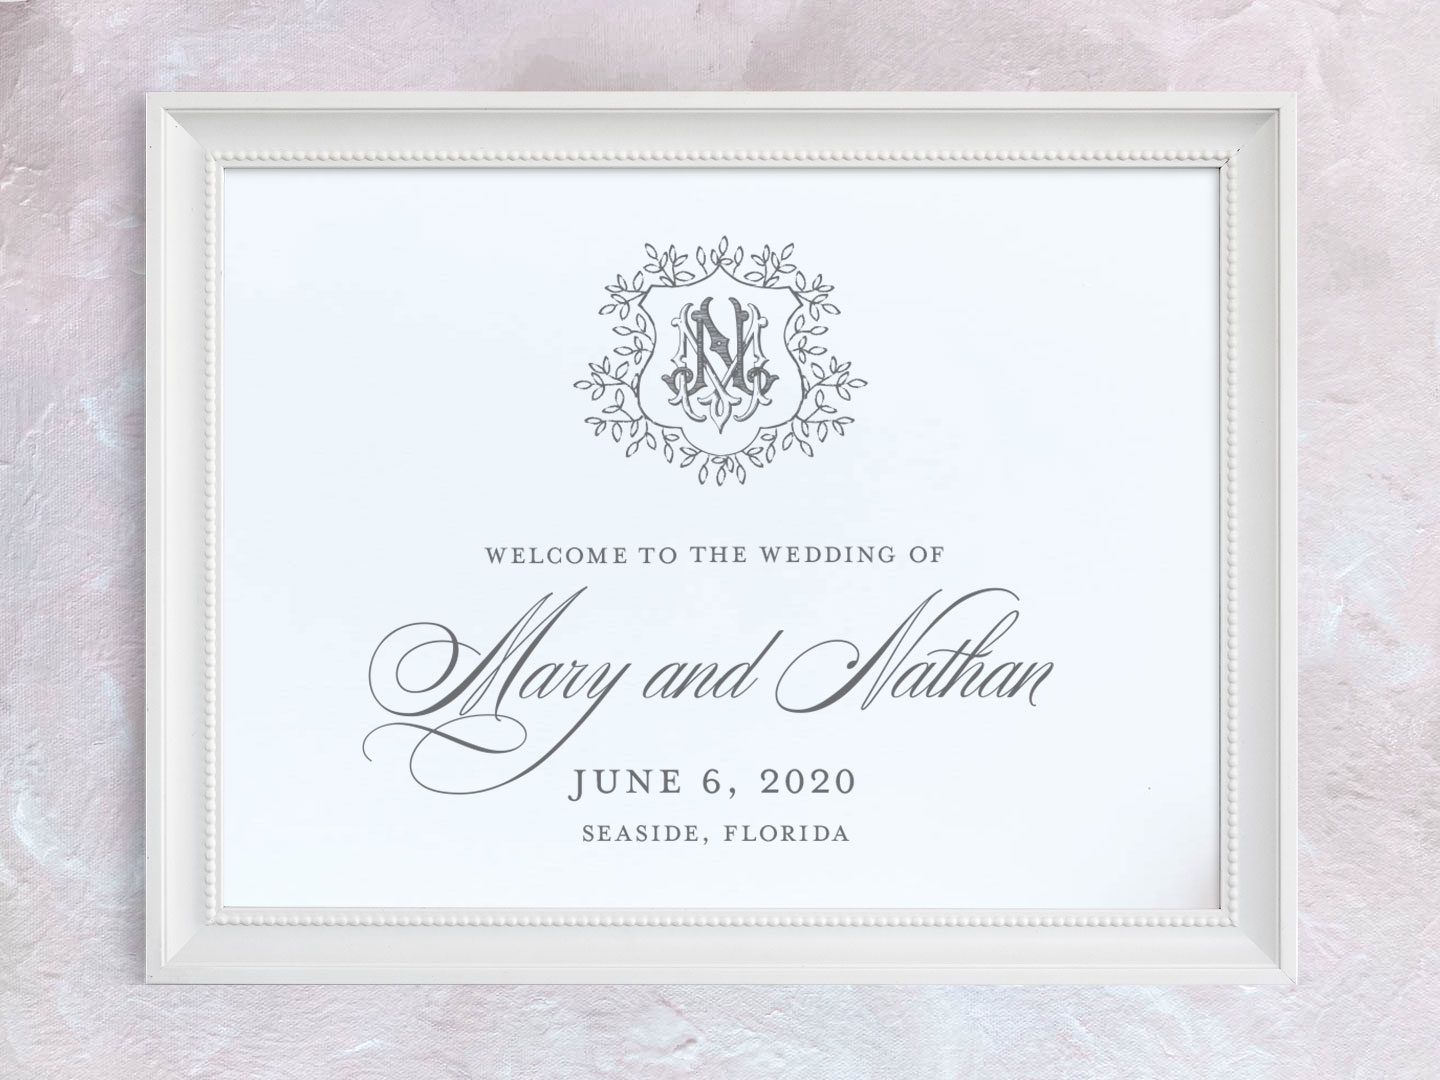 Wedding welcome sign with greenery crest and vintage monogram.